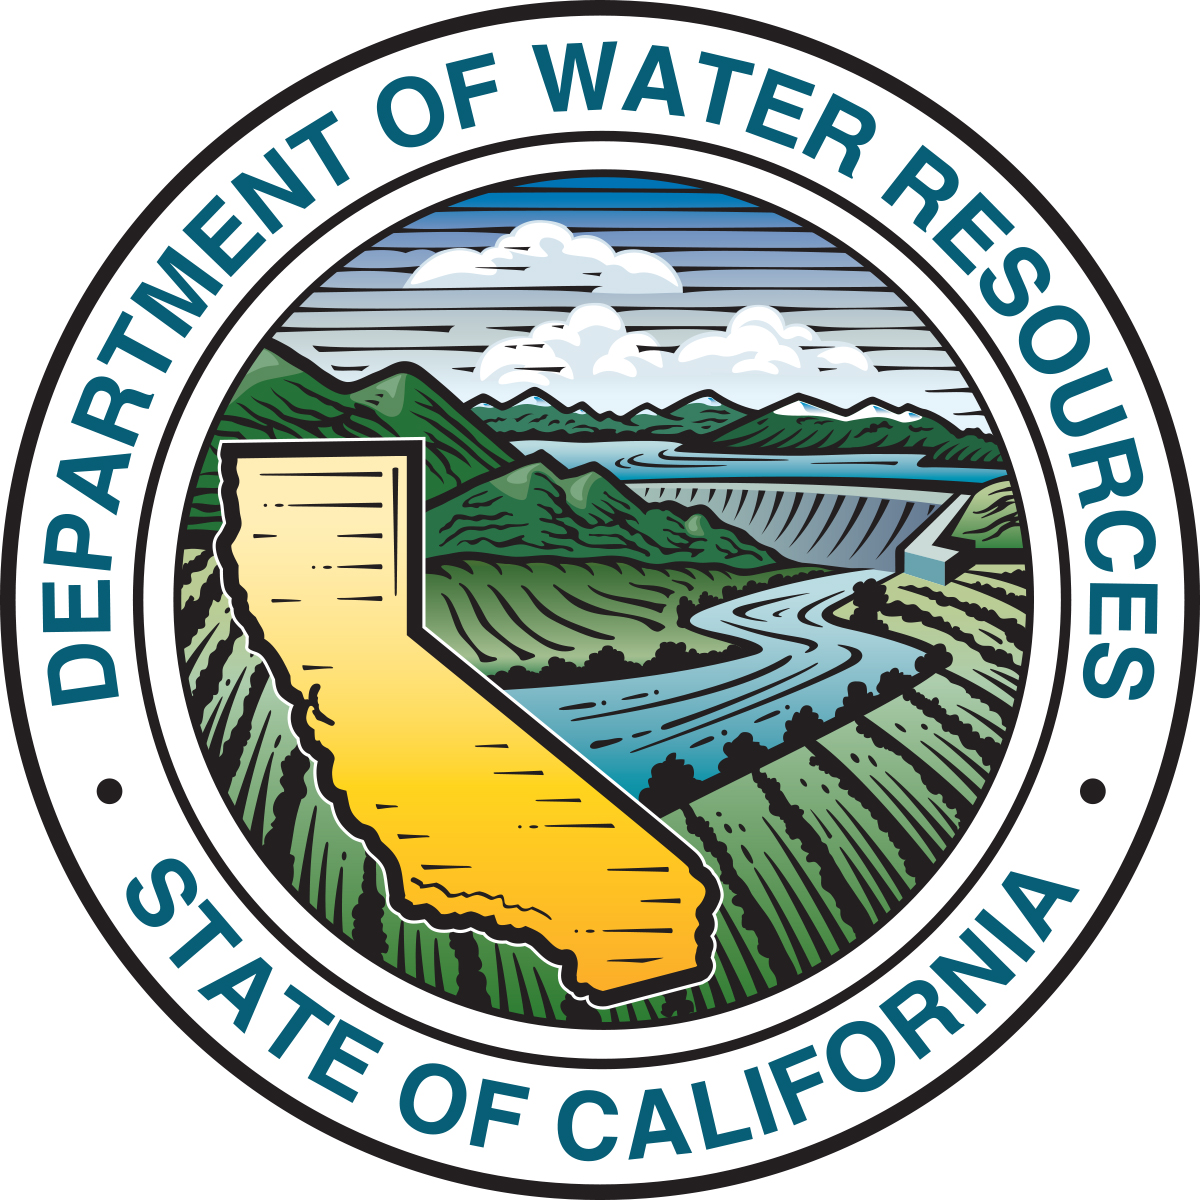 California Department of Water Resources Water System Revenue Bonds logo